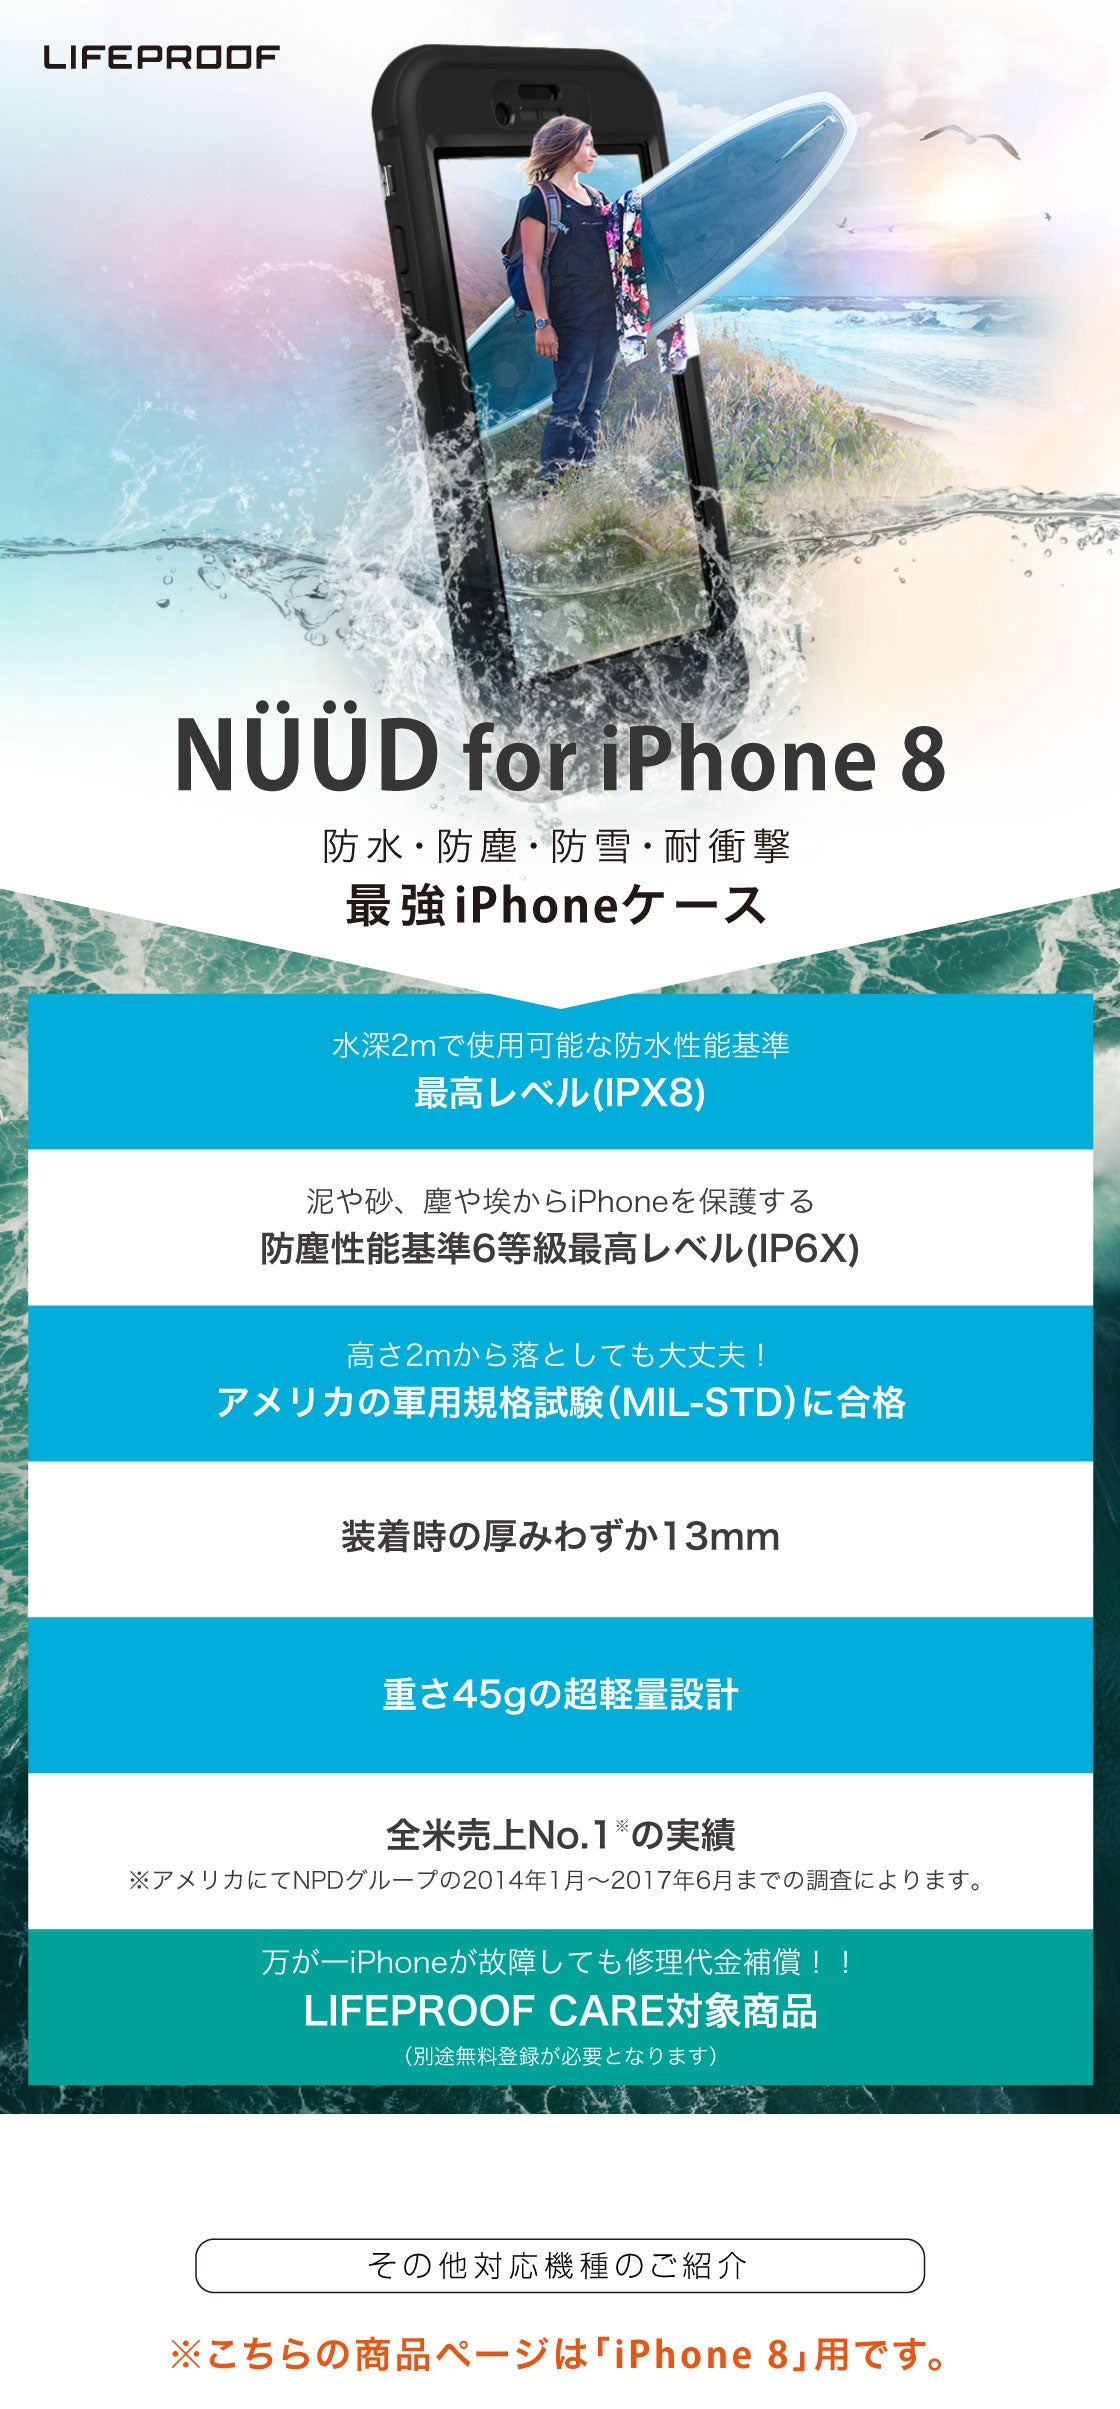 Brochure - LIFEPROOF - NUUD for iPhone 8